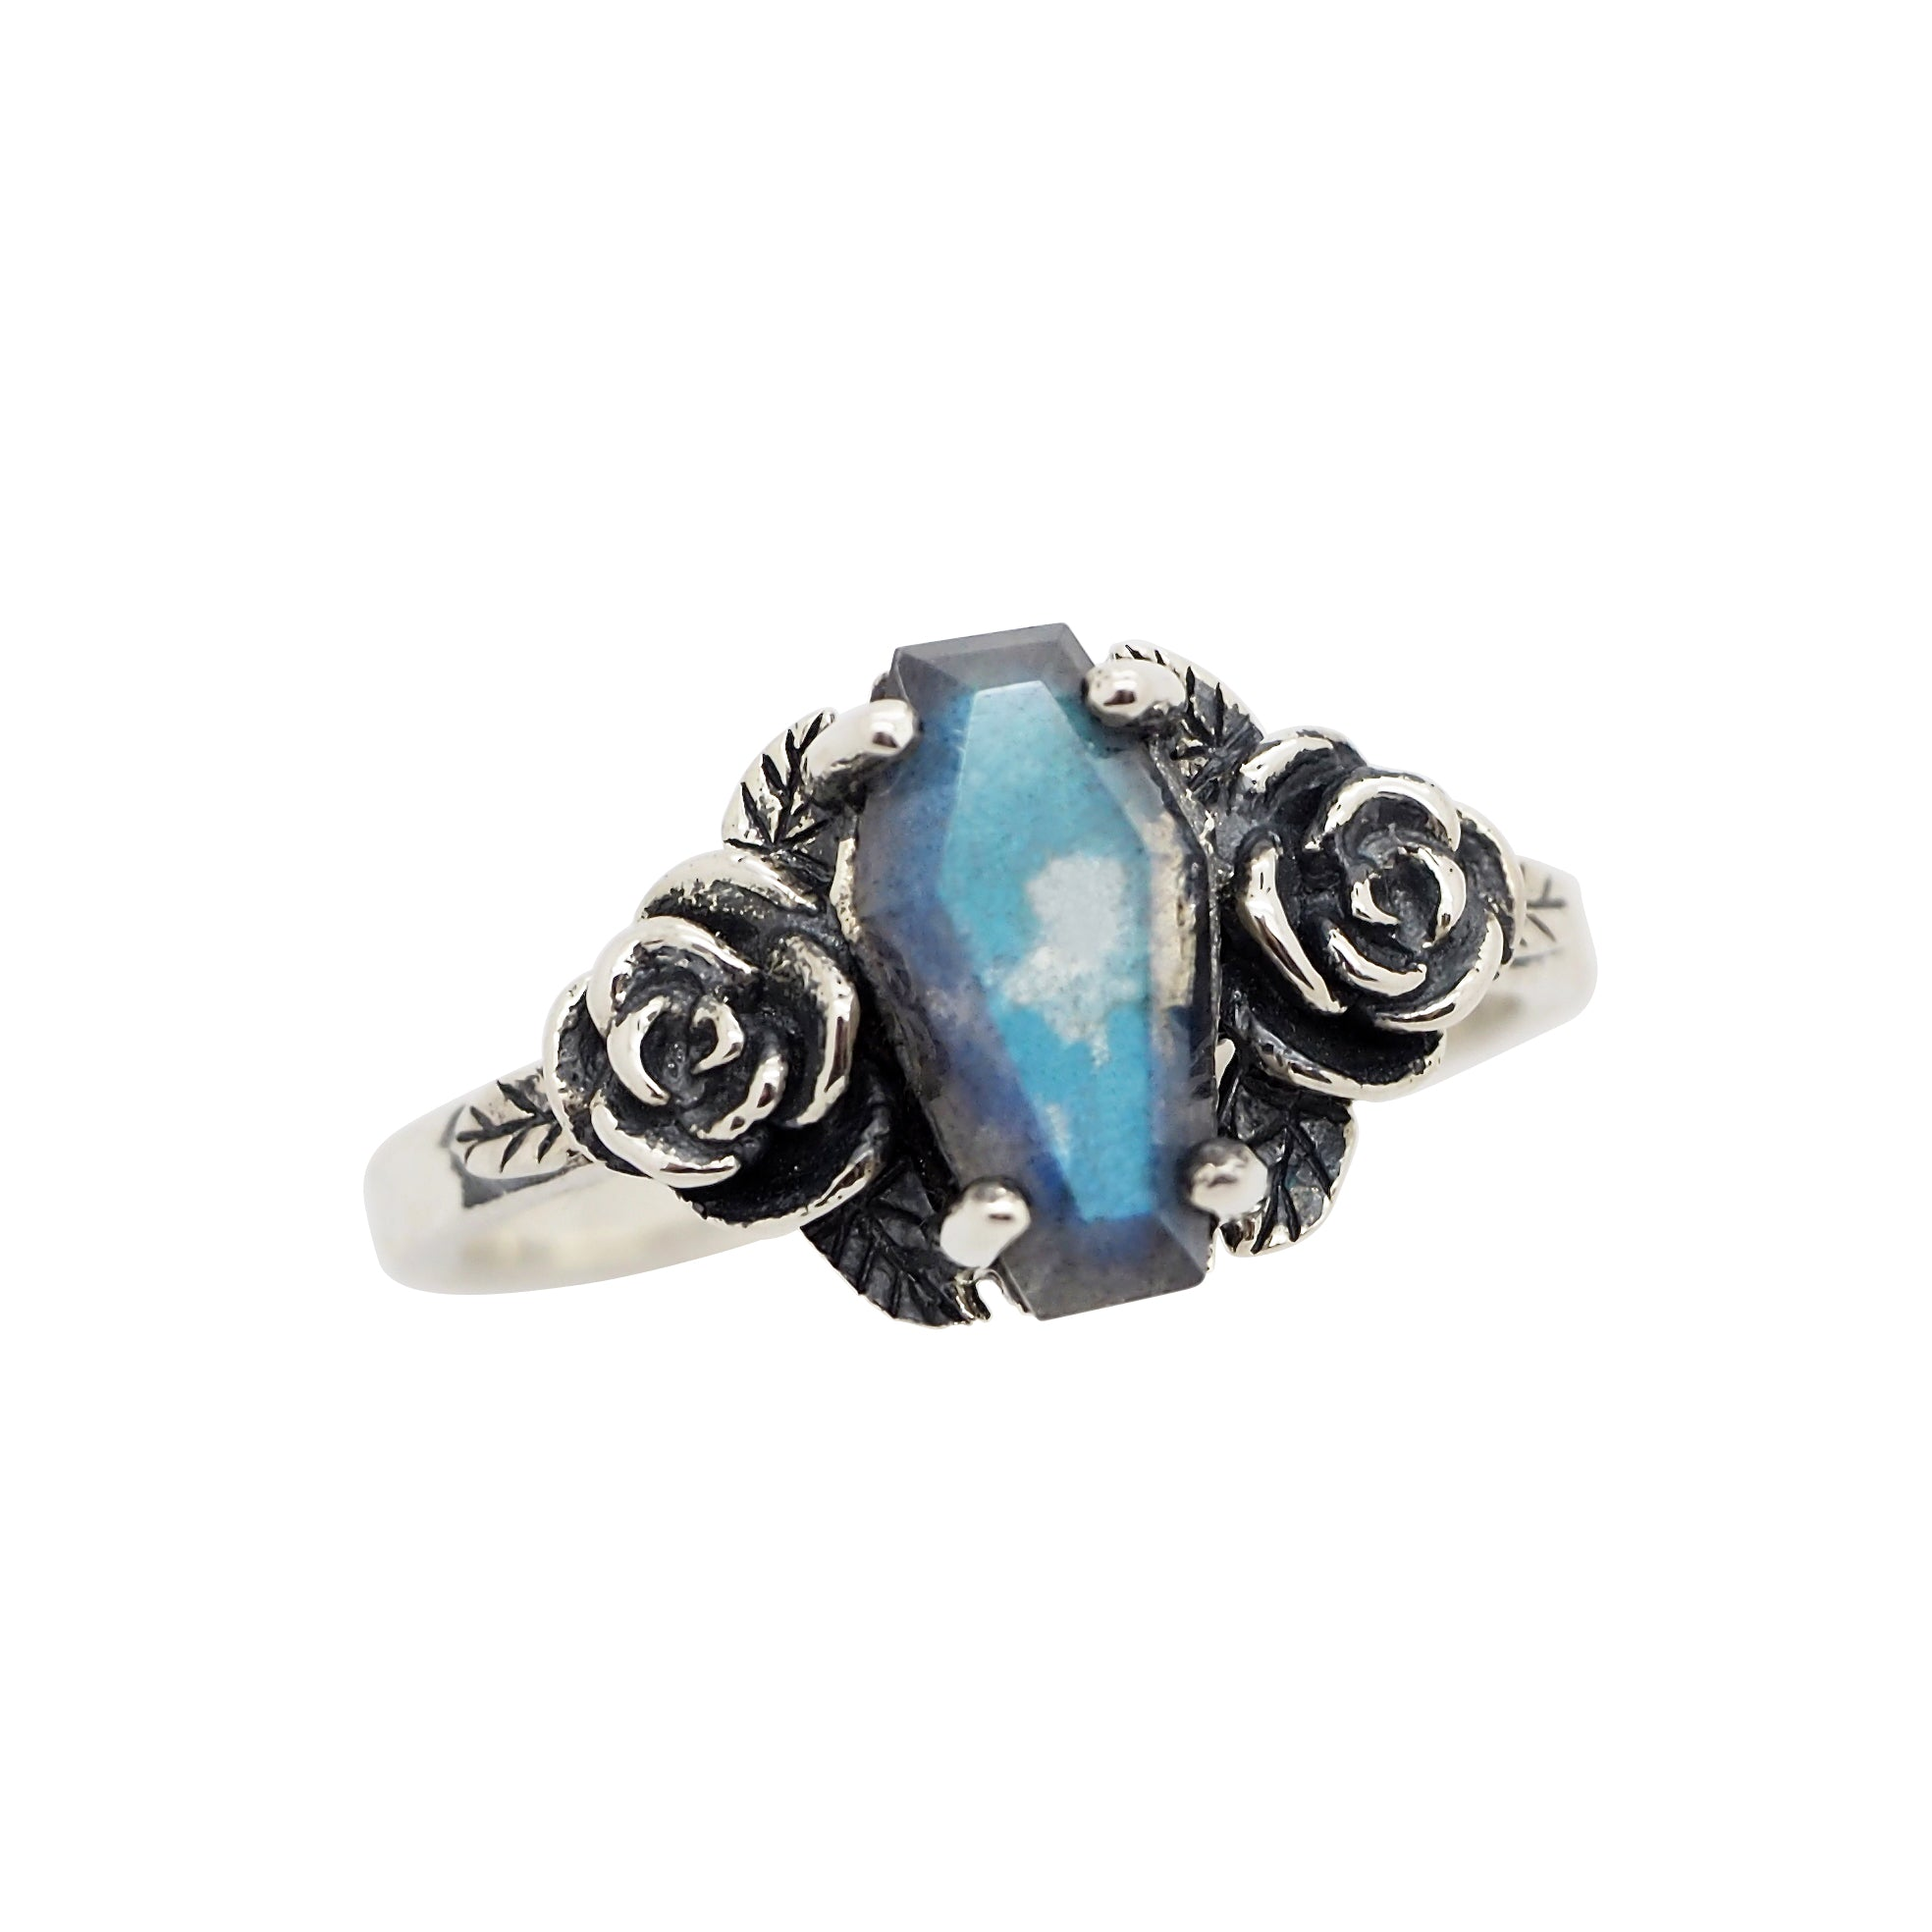 Labradorite 'Buried Beneath The Roses' Ring